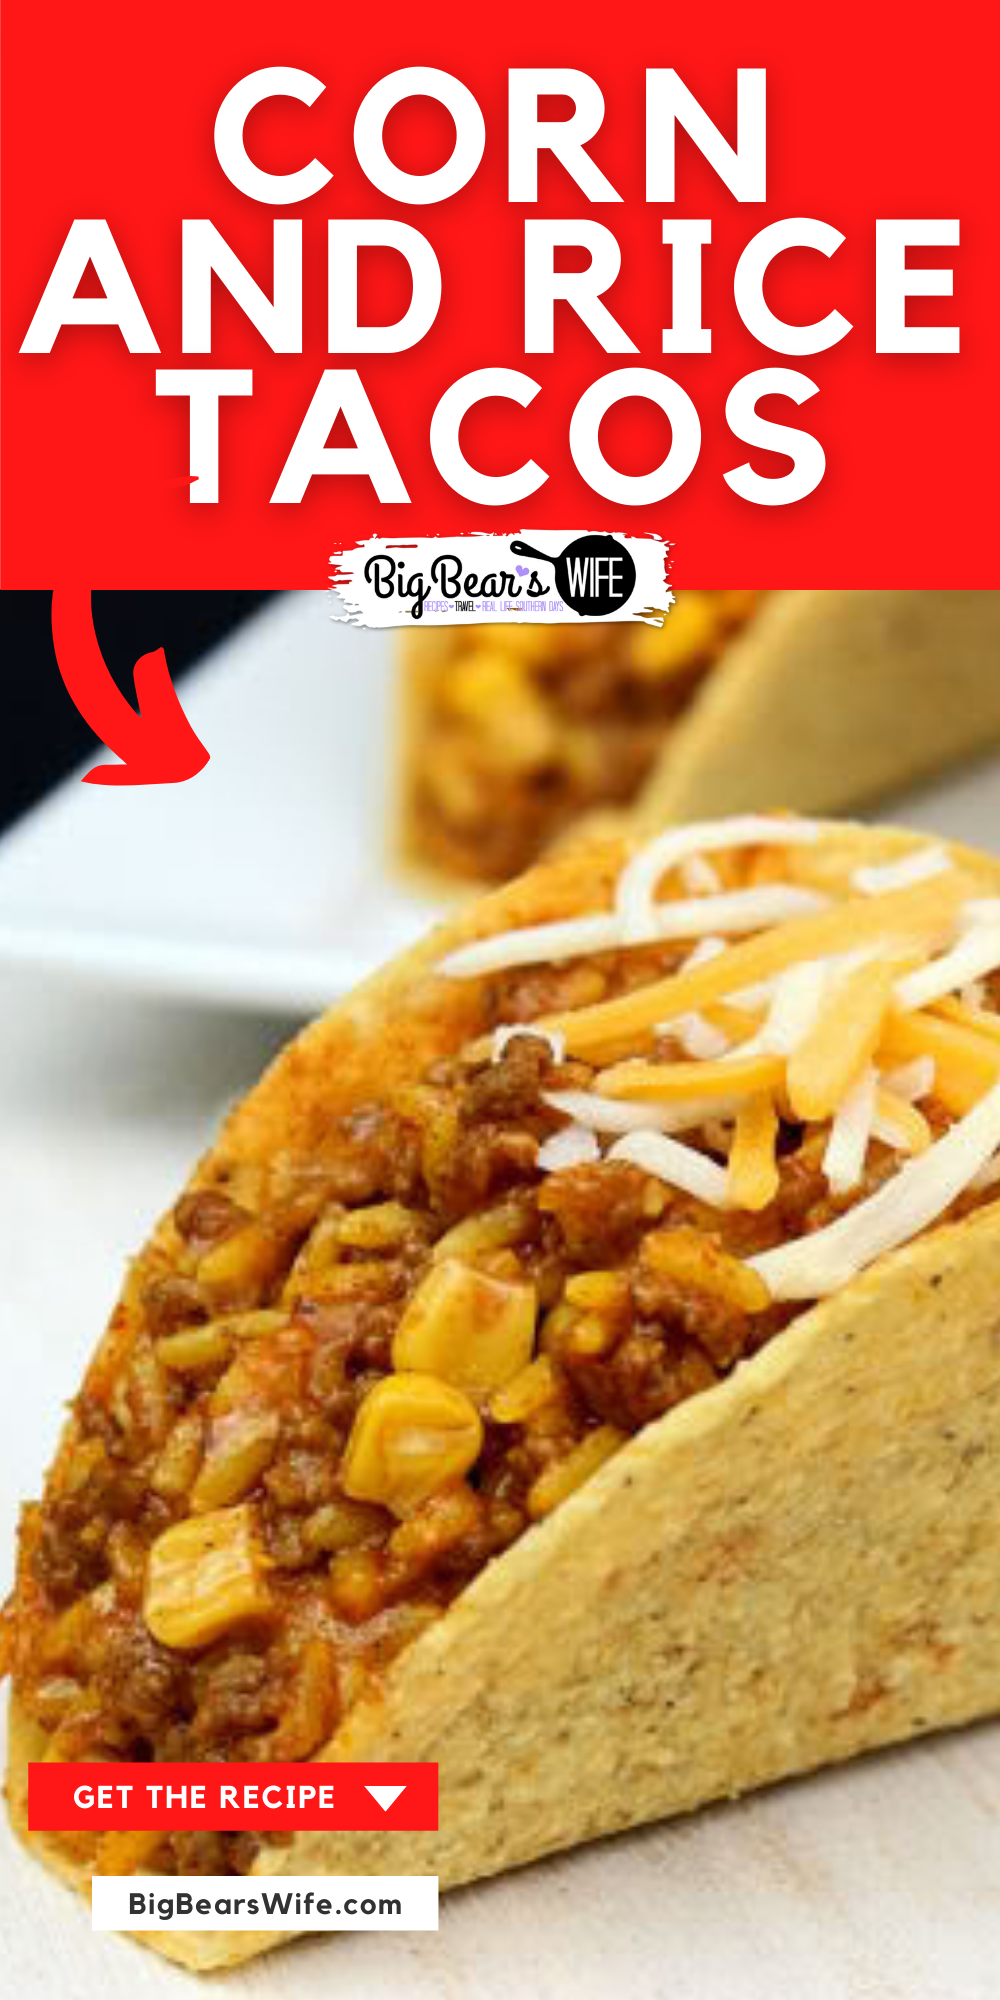 An easy dinner idea that's a favorite in our house! Corn and Rice Tacos are made of beef, taco mix, corn and cheese! Super simple and always delicious! 